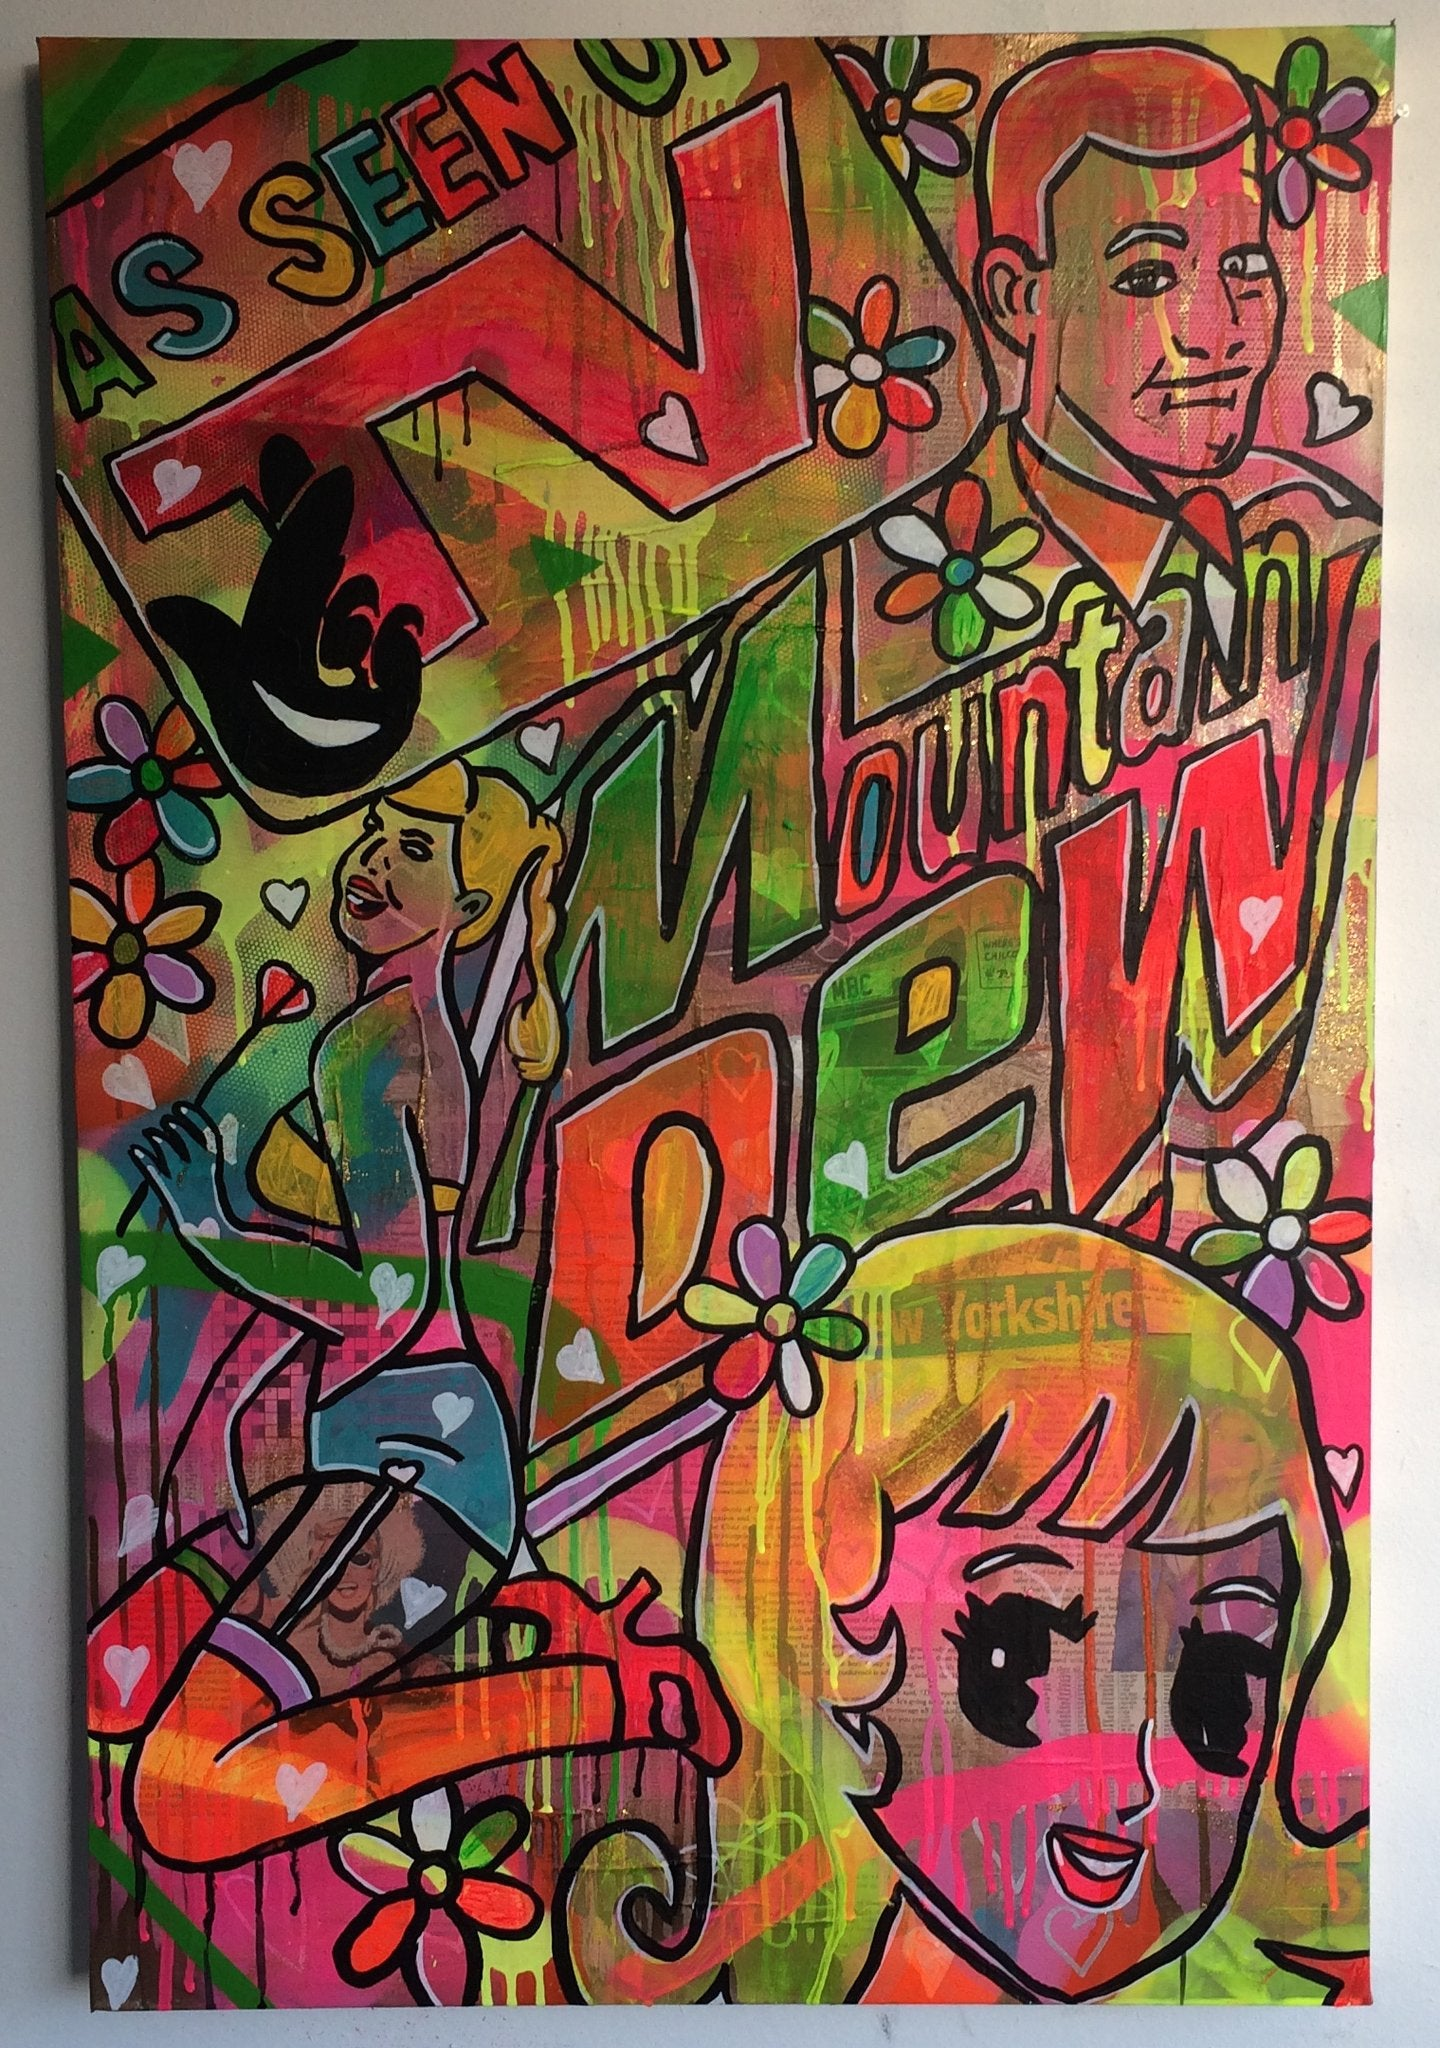 Lady Luck by Barrie J Davies 2015, mixed media on canvas 60cm x 80cm, Unframed. Barrie J Davies is an Artist - Pop Art and Street art inspired Artist based in Brighton England UK - Pop Art Paintings, Street Art Prints & Editions available.